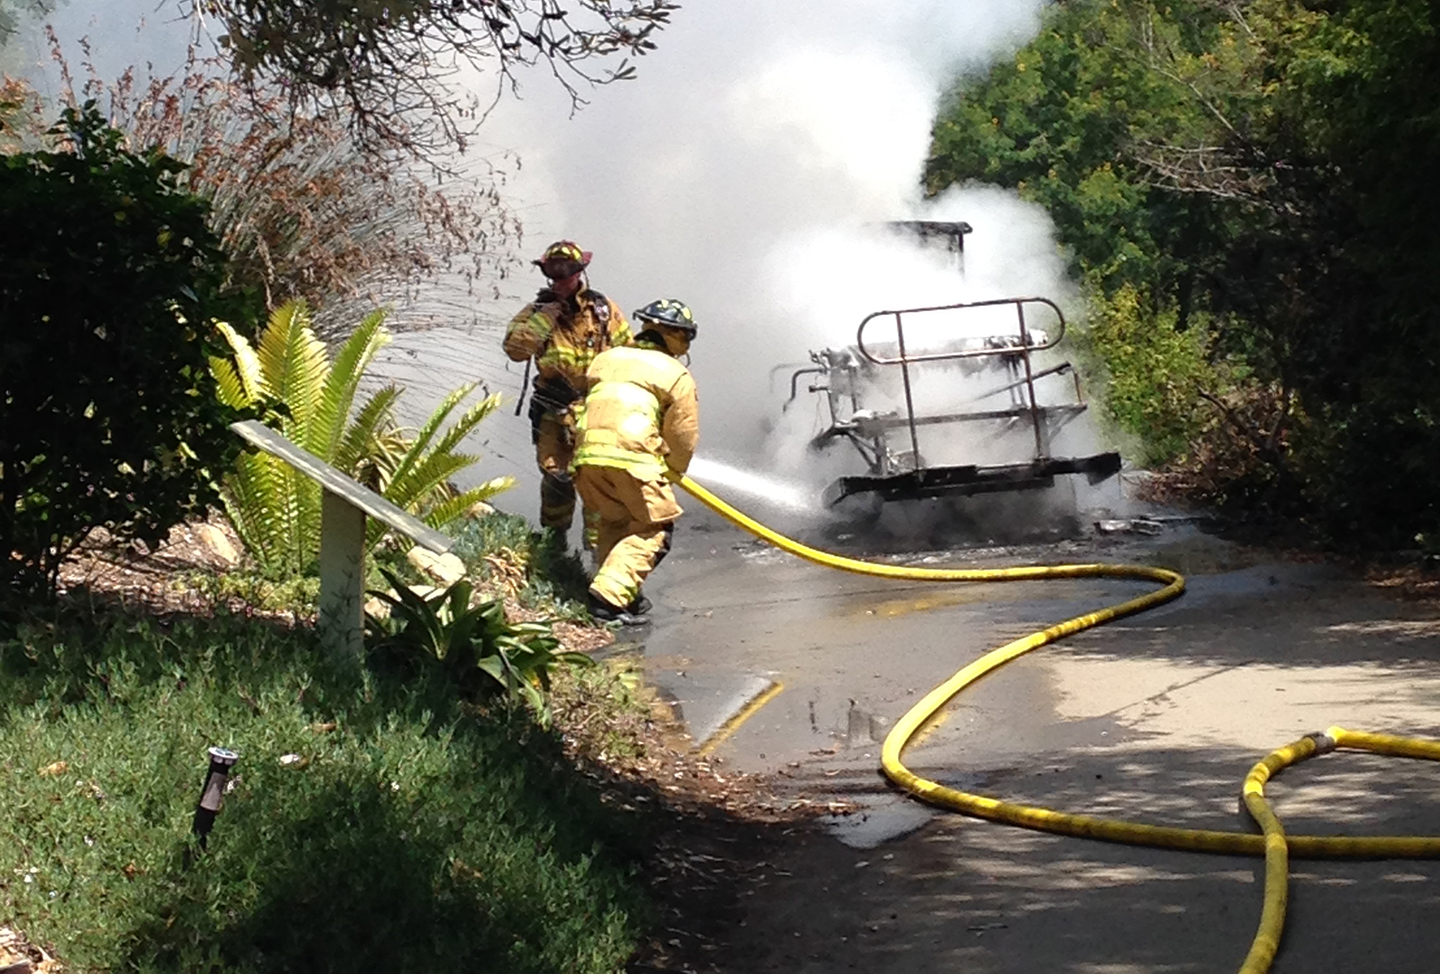 Encinitas fire crews extinguish a cart that caught on fire Wednesday morning at the San Diego Botanic Garden. Courtesy photo